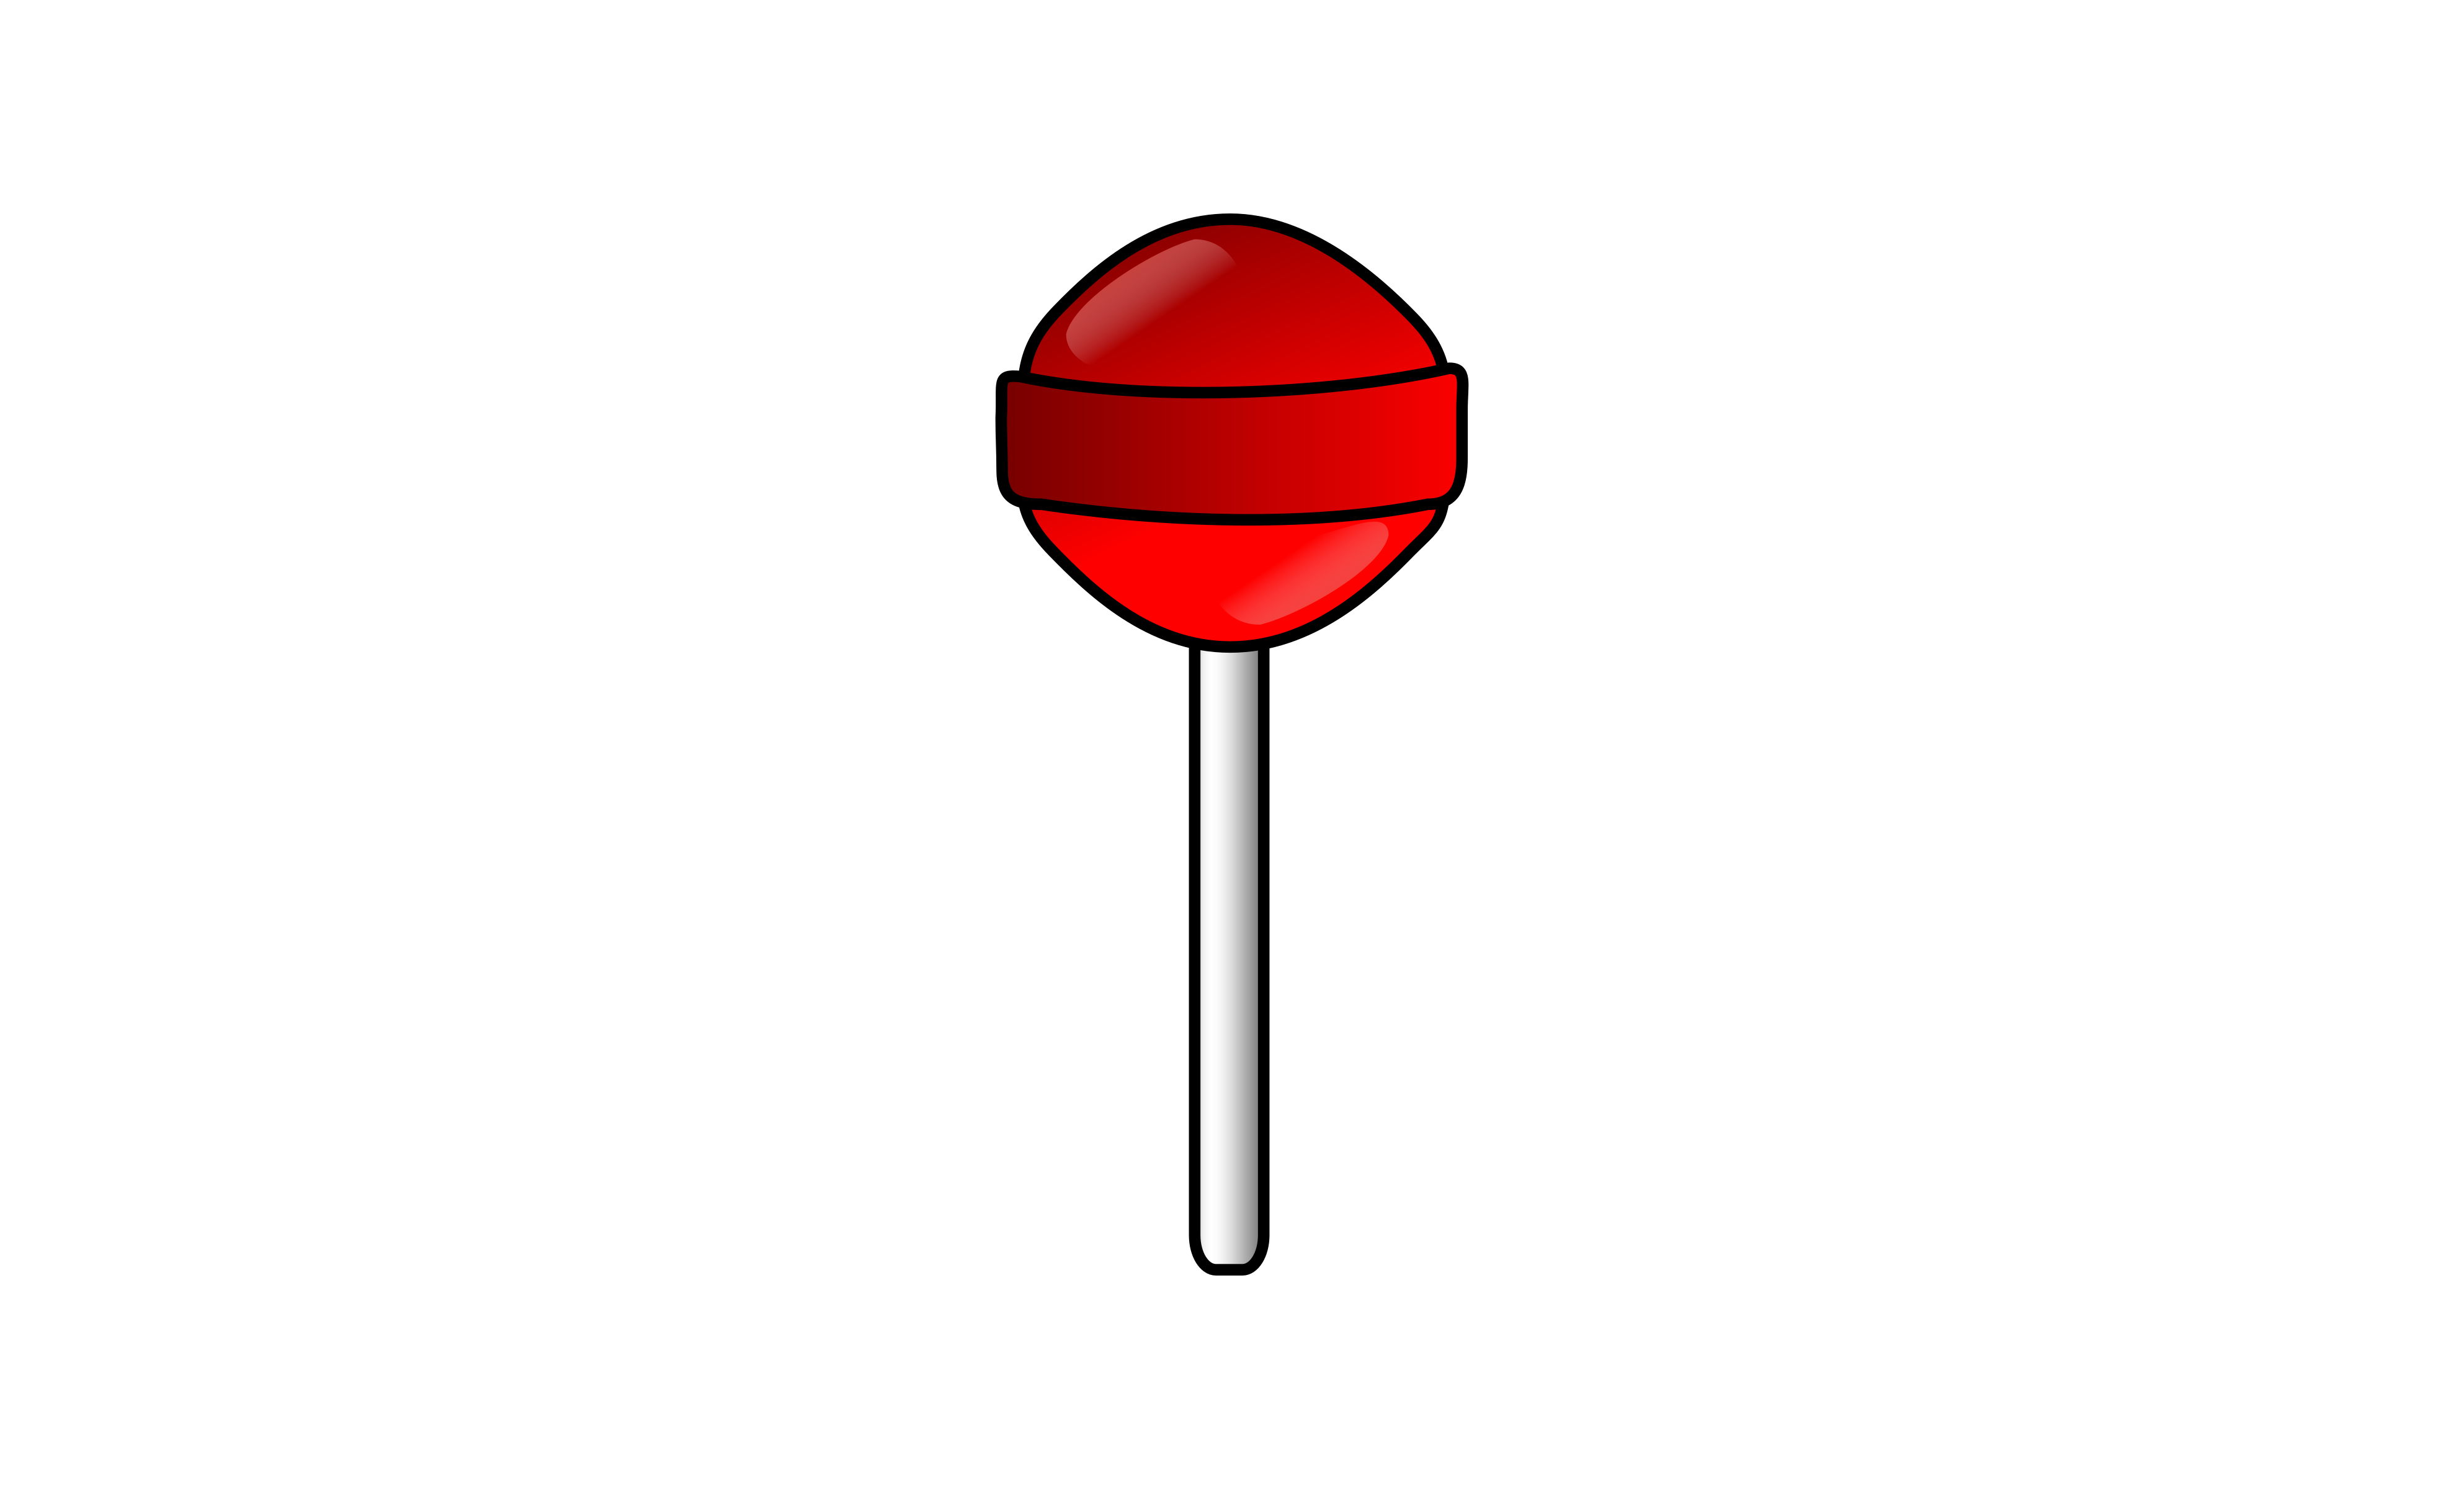 Red big image png. Lollipop clipart small